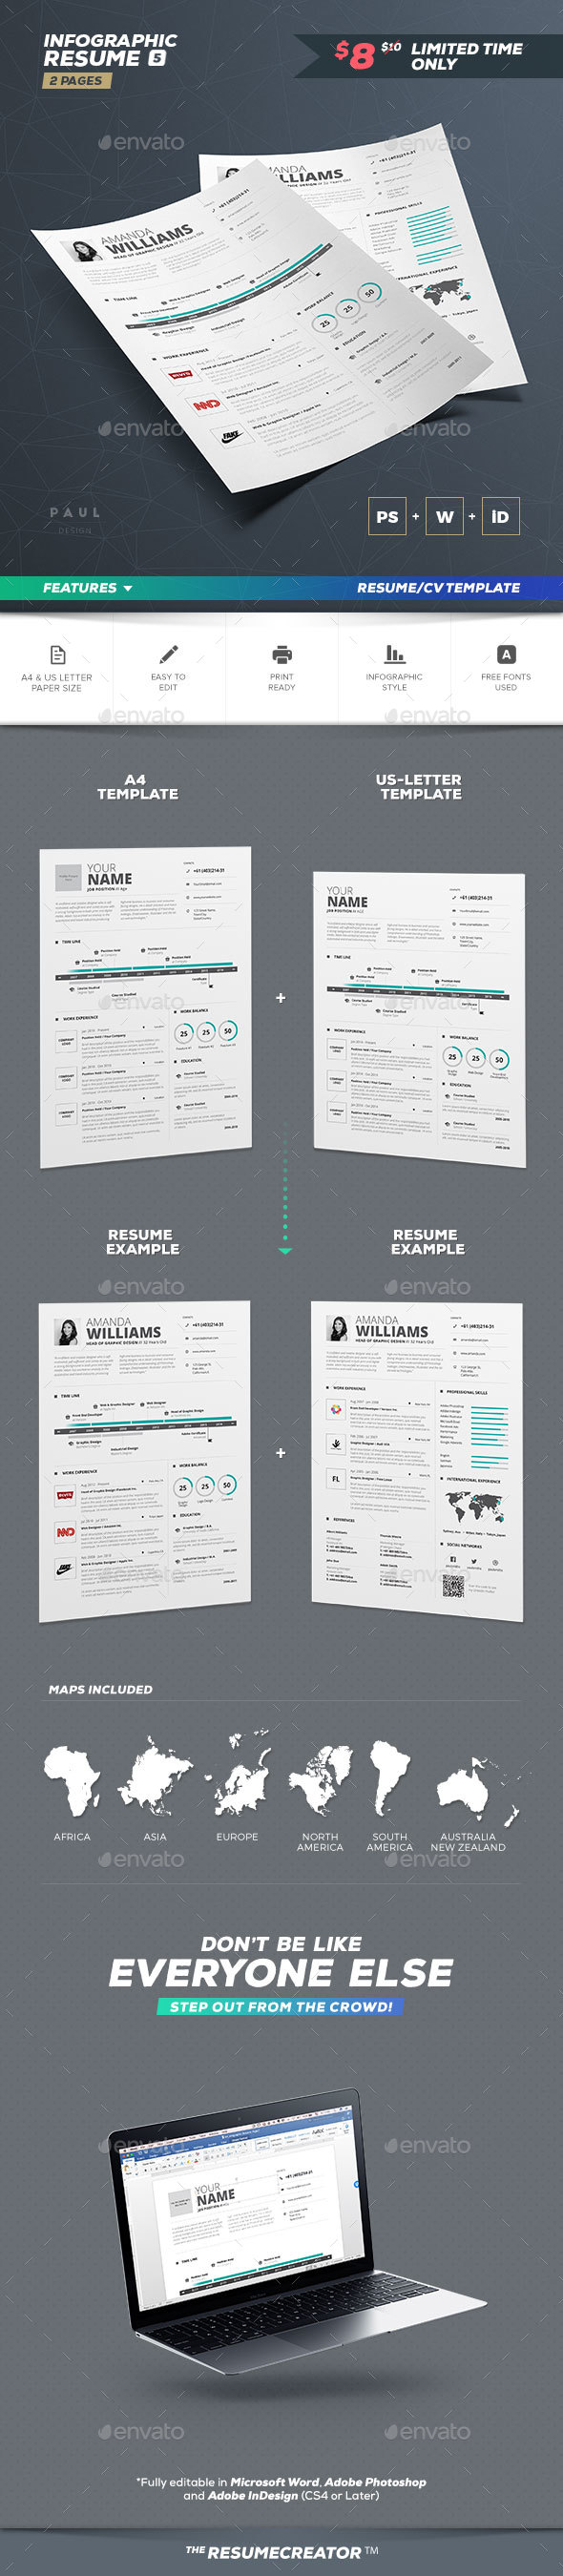 infographic resume cv volume 5 by paolo6180 graphicriver